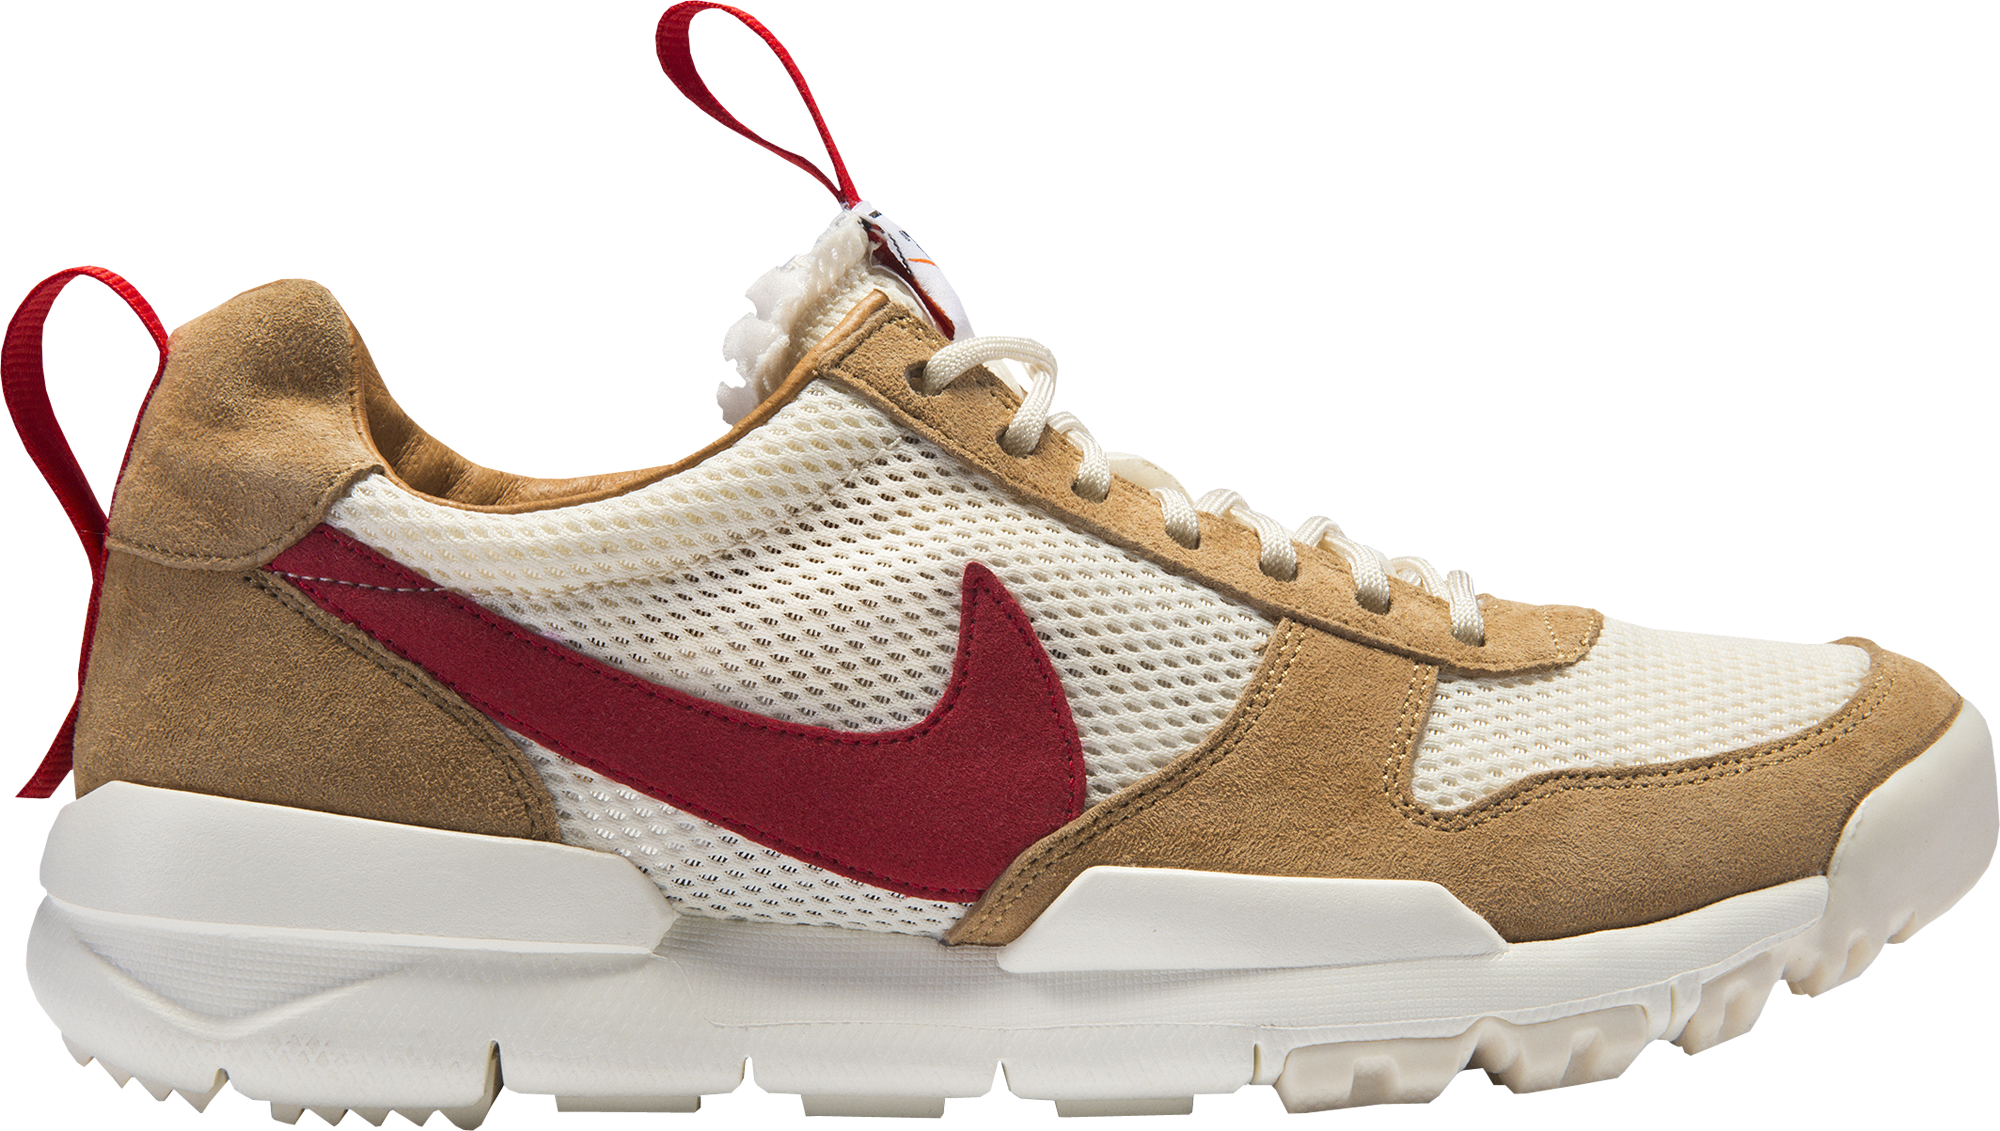 Tom Sachs x NikeCraft Mars Yard Shoe 2.0 - StockX News 5cb6a4ec9402